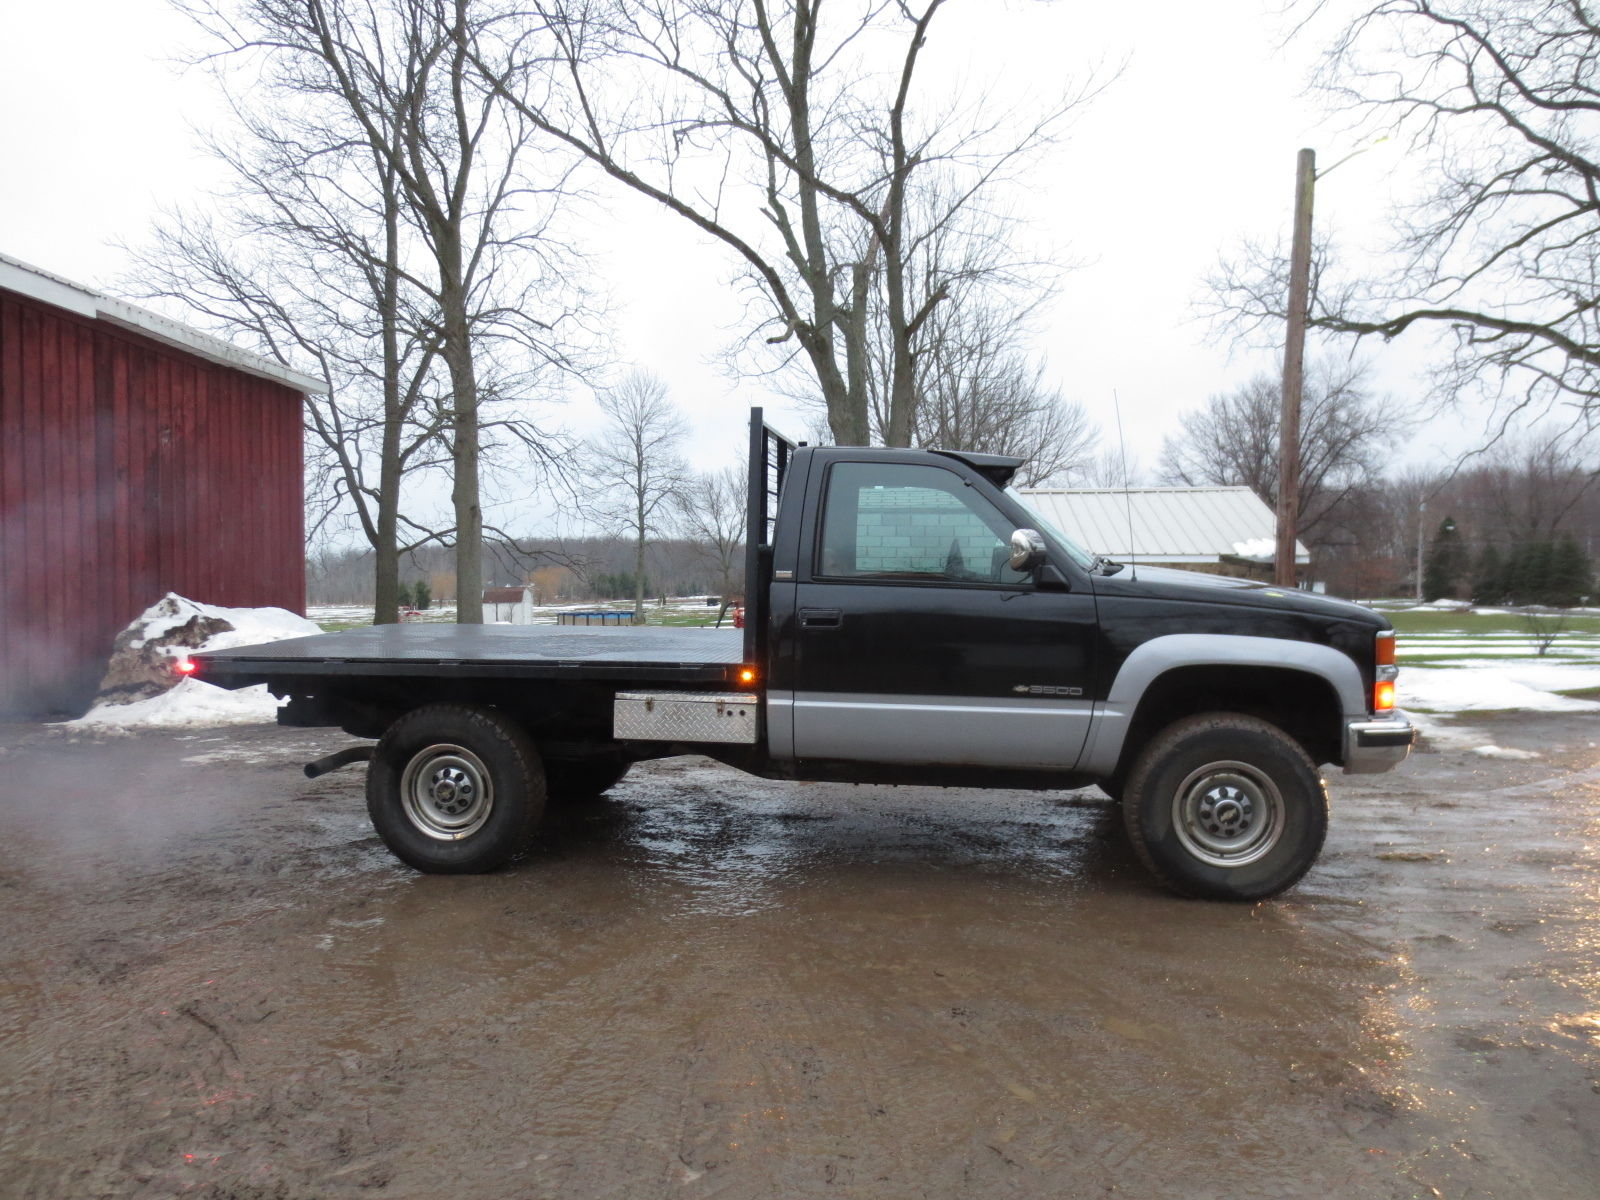 Red Deer Dump >> 1994 Silverado Diesel Flatbed Excellent Condition 4x4 - Classic Chevrolet C/K Pickup 3500 1994 ...